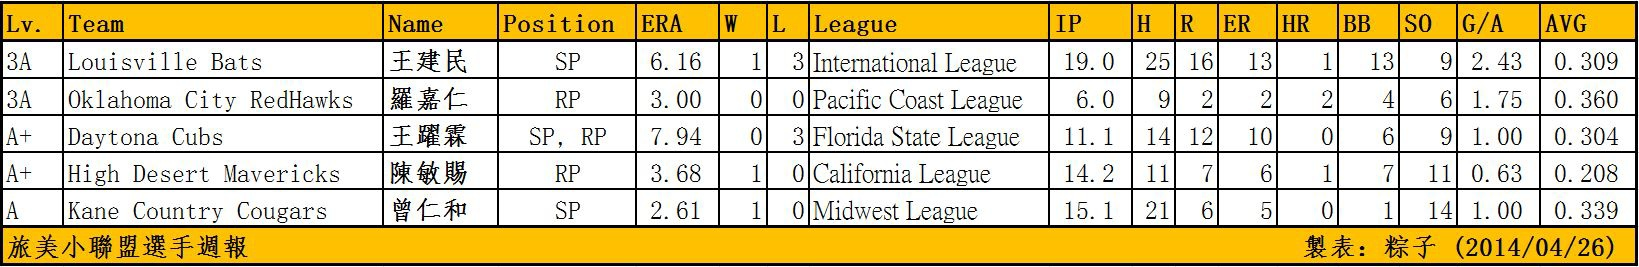 20140426 Taiwanese MiLB Pitchers Week Report